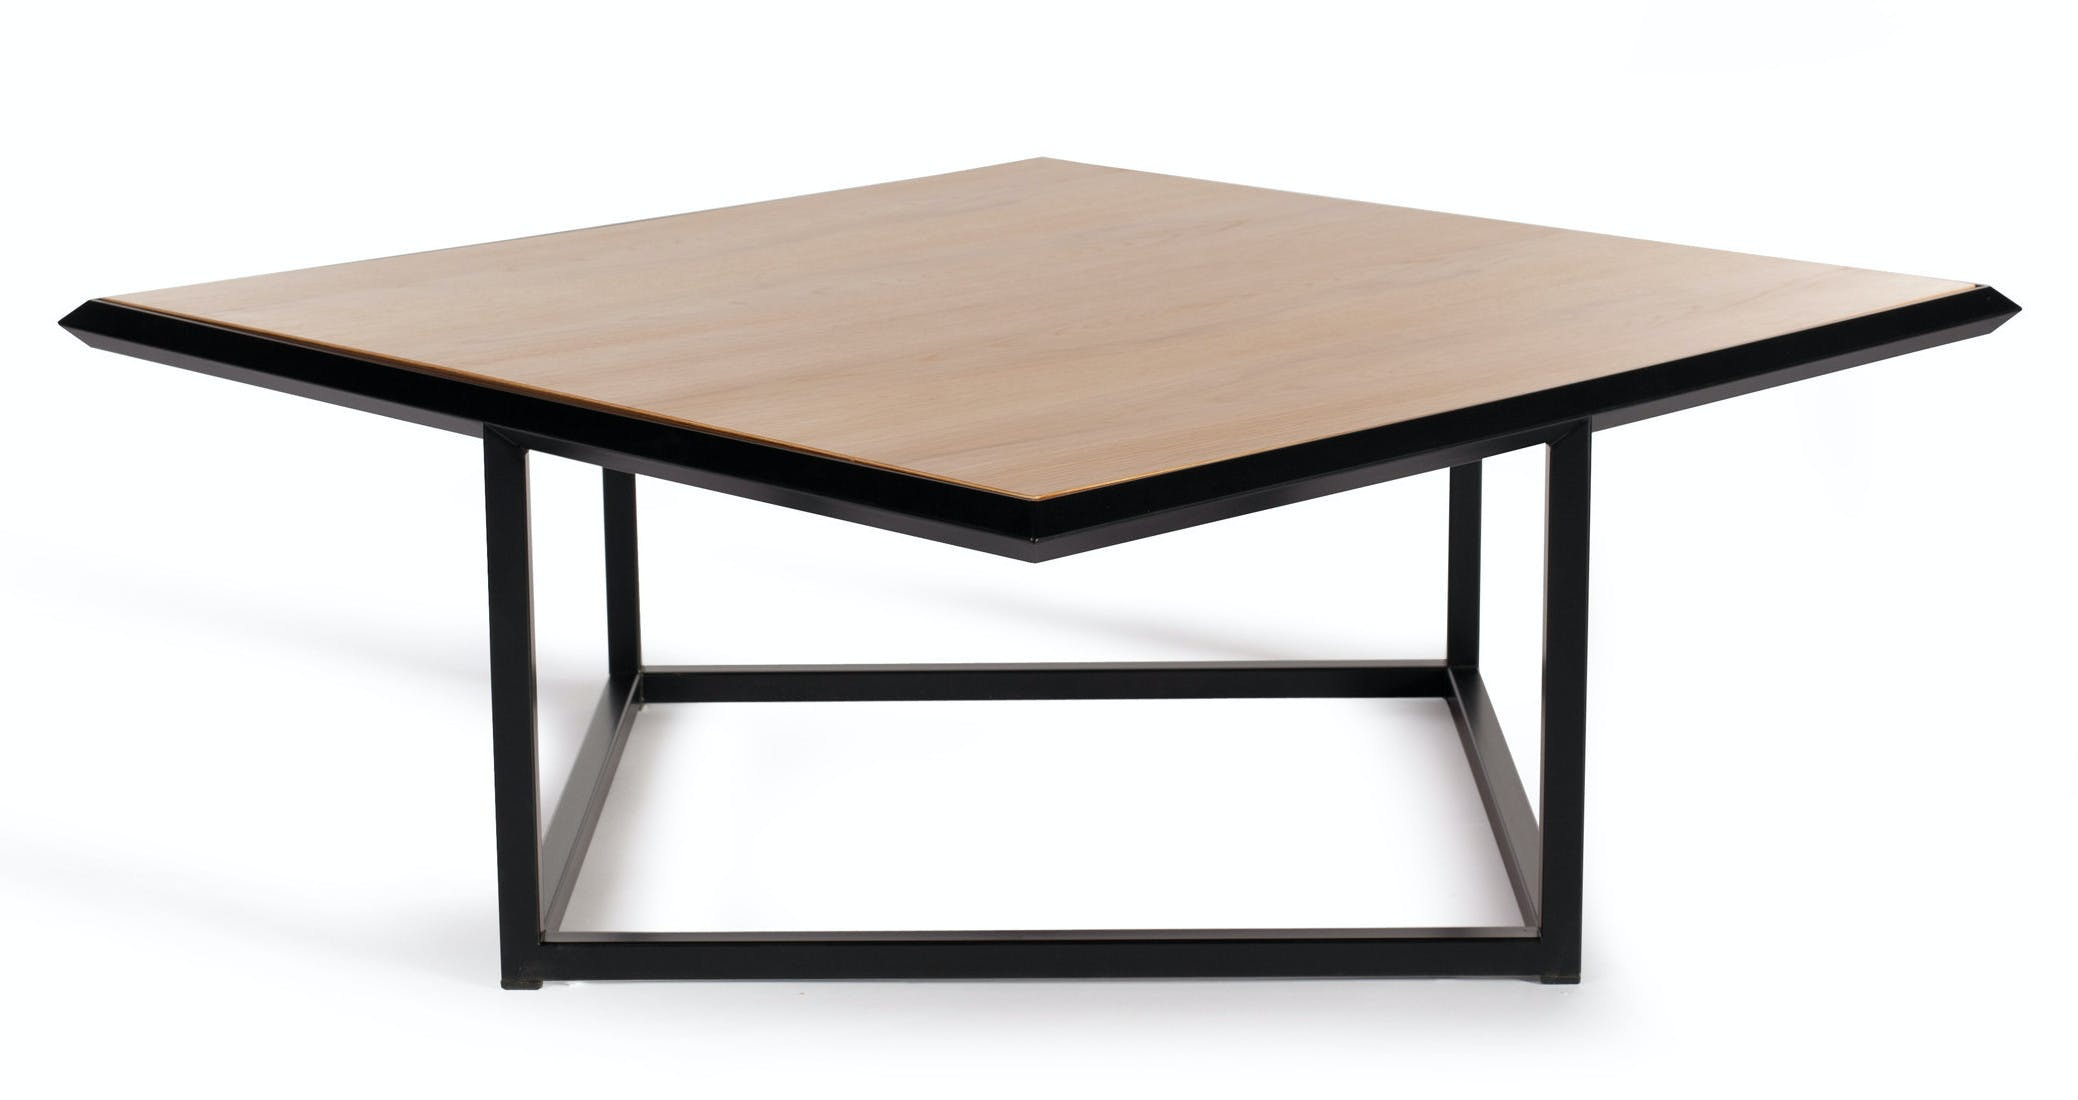 Deadgood-turn-table-dark-oak-haute-living_190225_211136